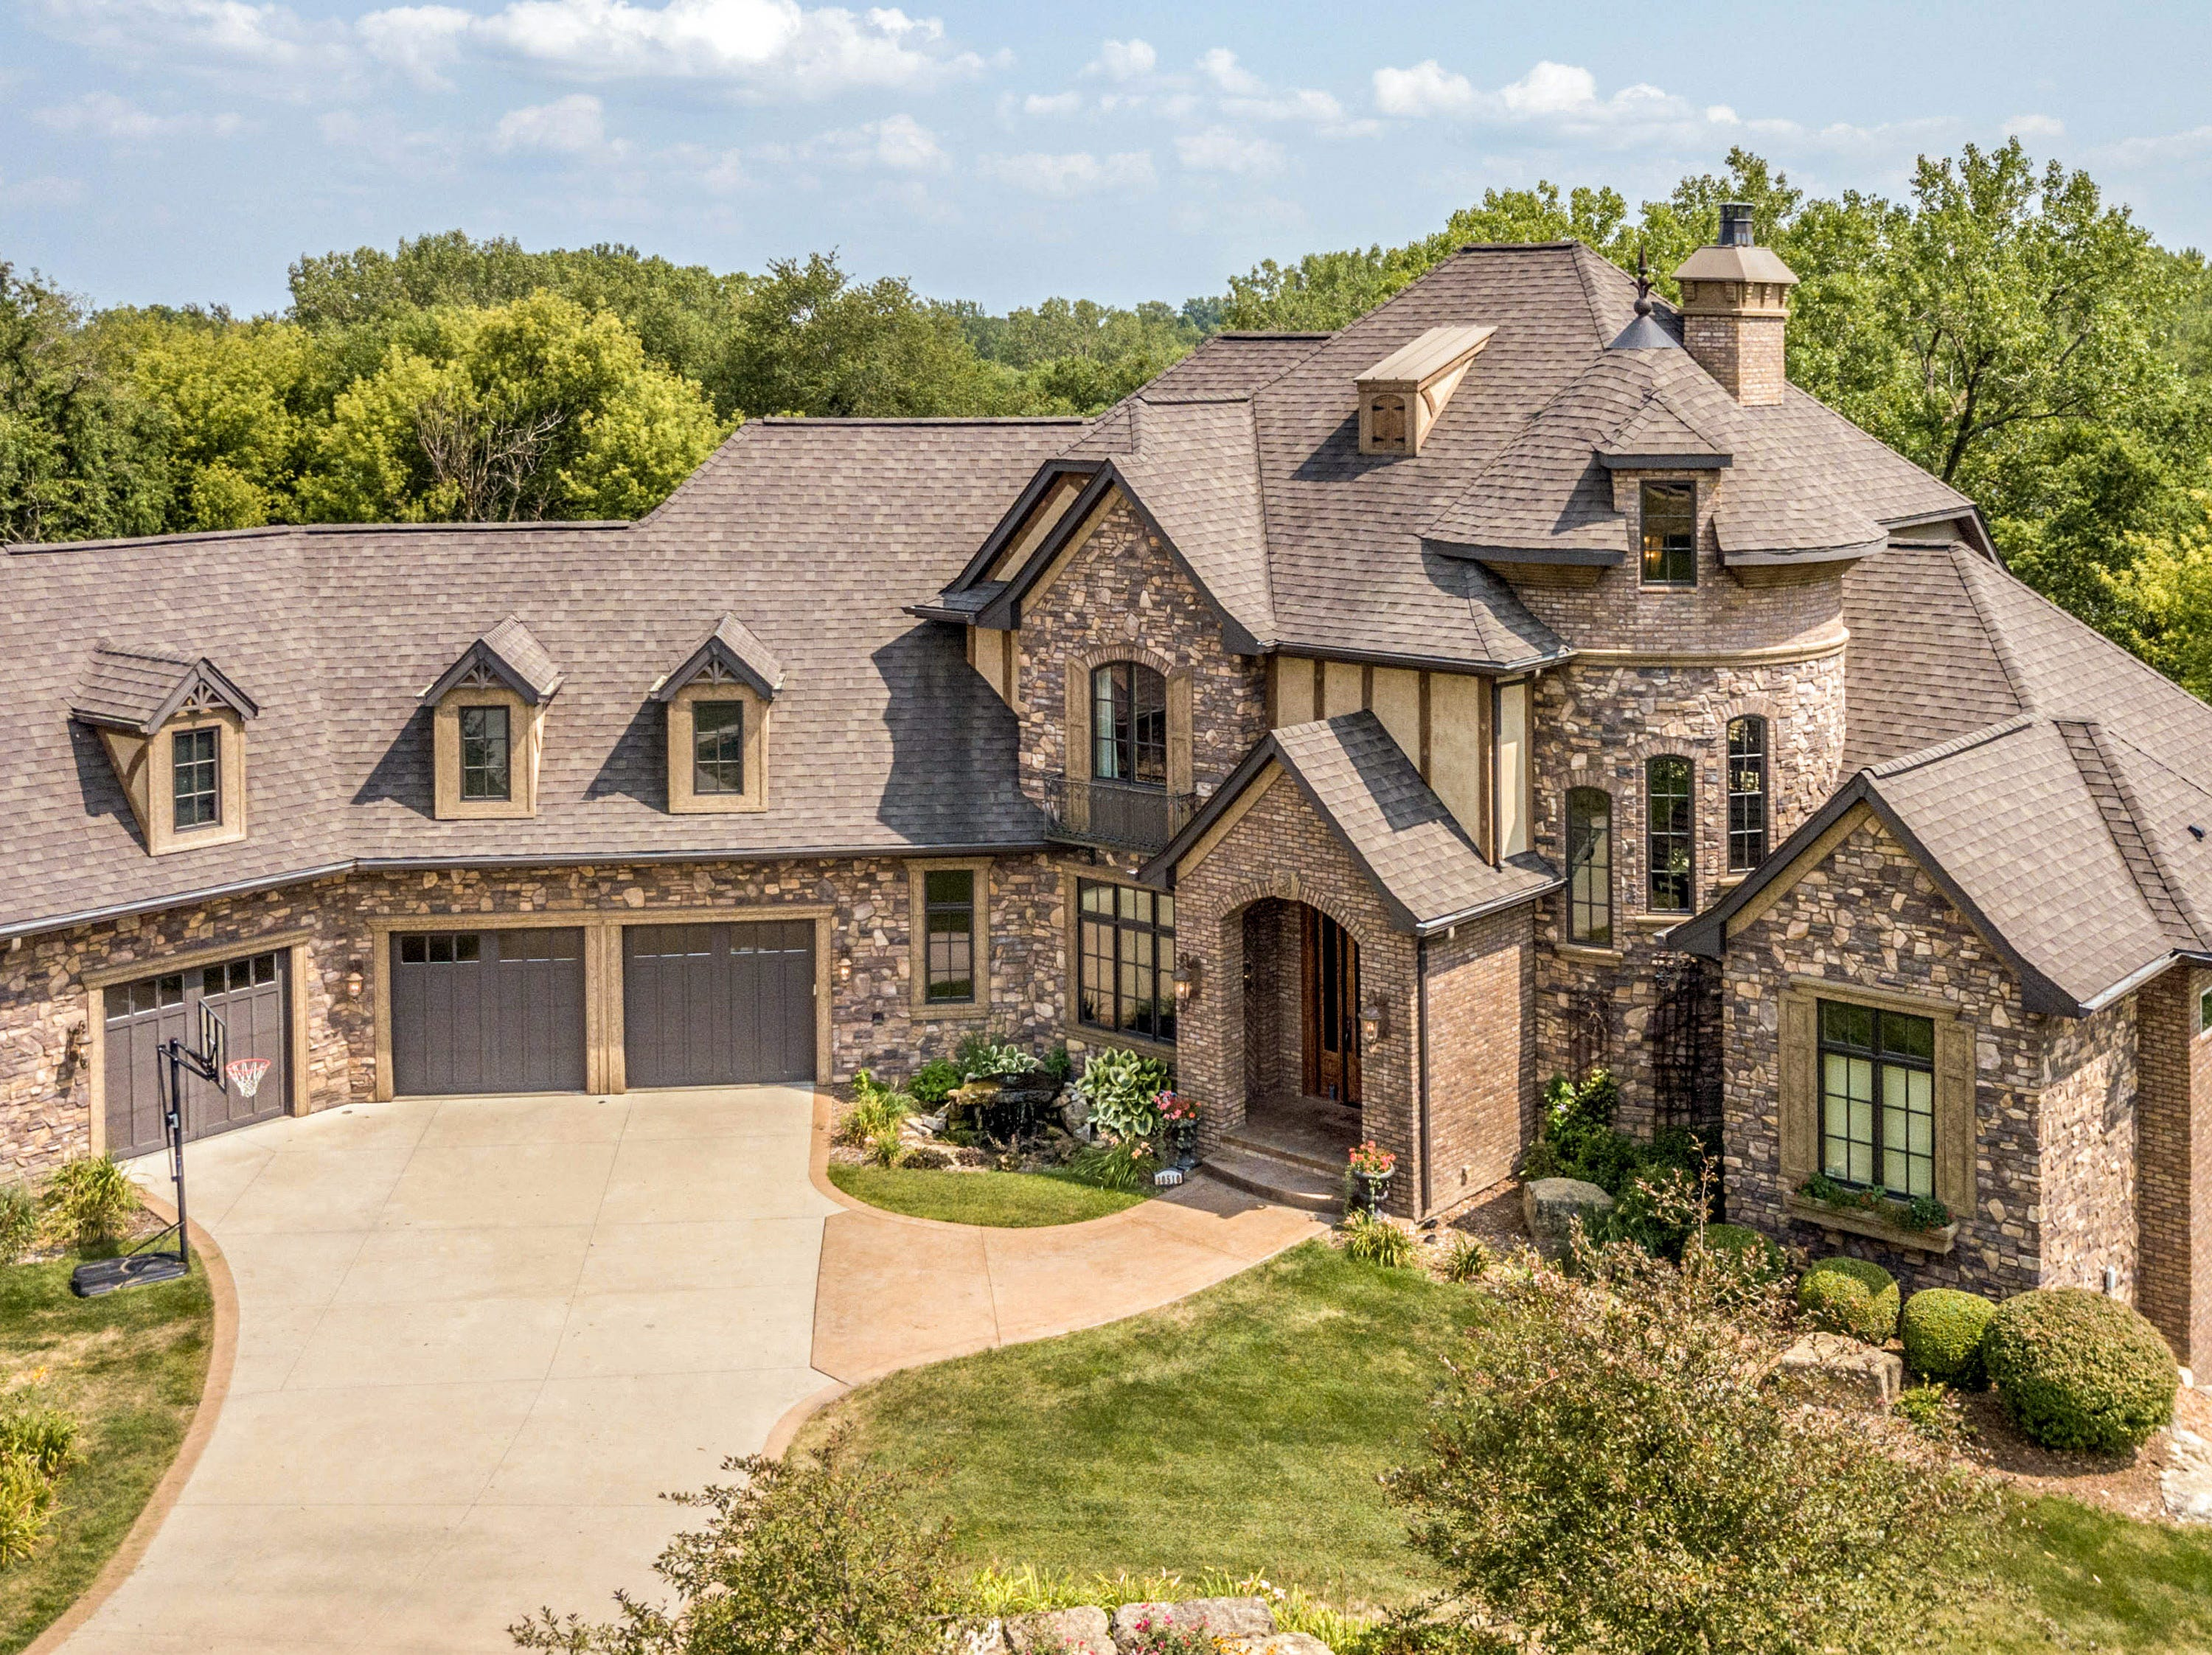 This home on Northwest 75th Place in Johnston sold for $1.07 million in 2018. It has five bedrooms, six bathrooms, a theater room and a wine cellar.